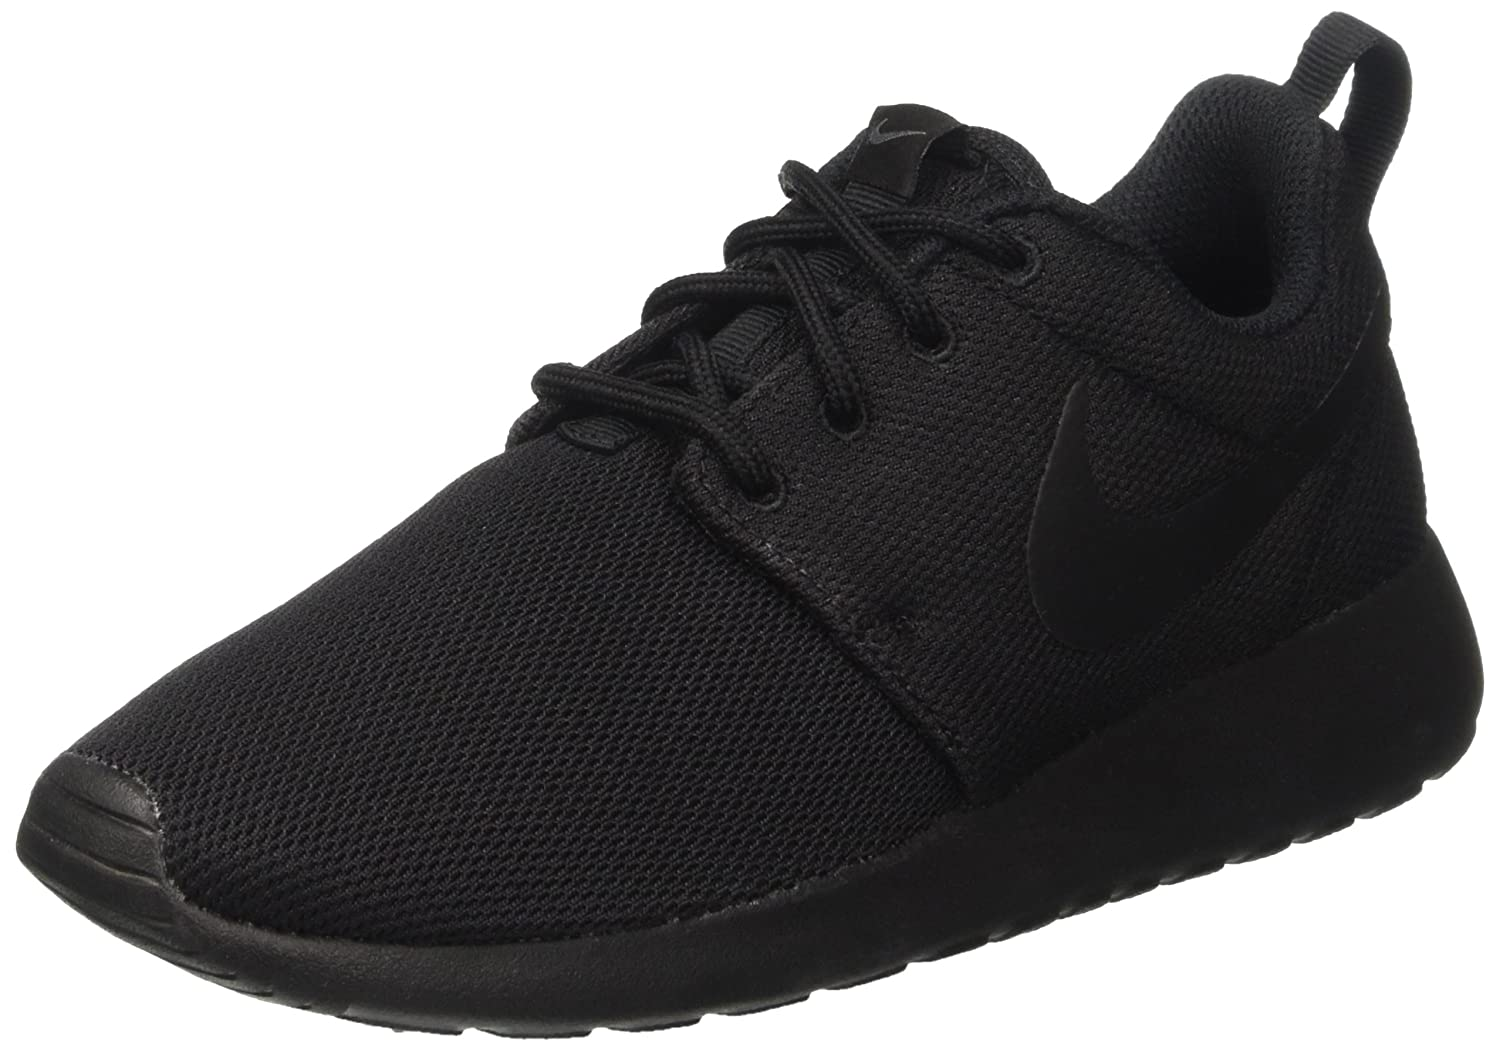 NIKE Women's Roshe One Running Shoe B01IDLDONC 5.5 B(M) US|Black/White-Dark Grey